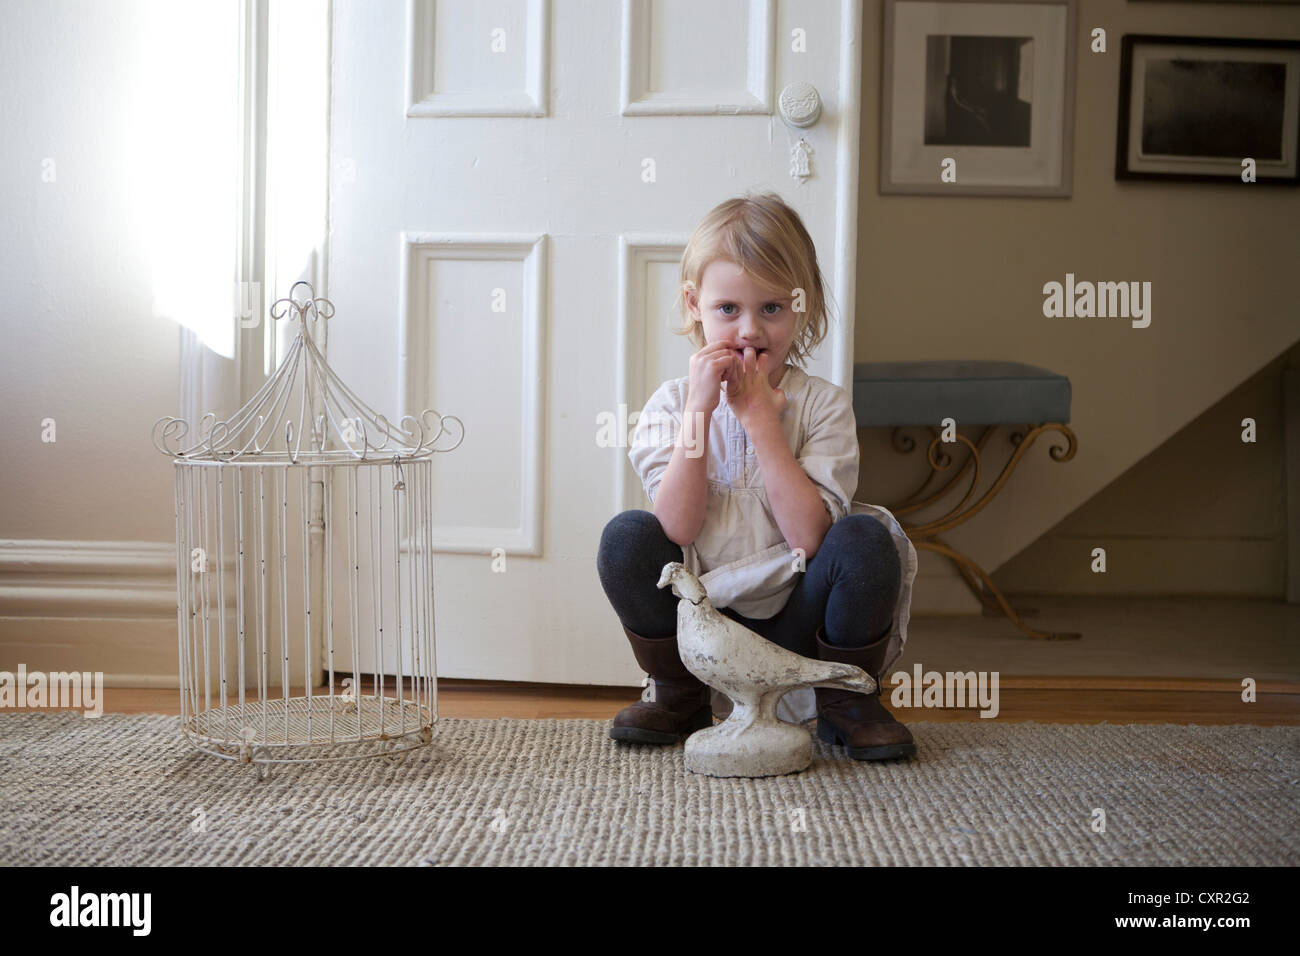 Little girl by door with birdcage and bird statue - Stock Image